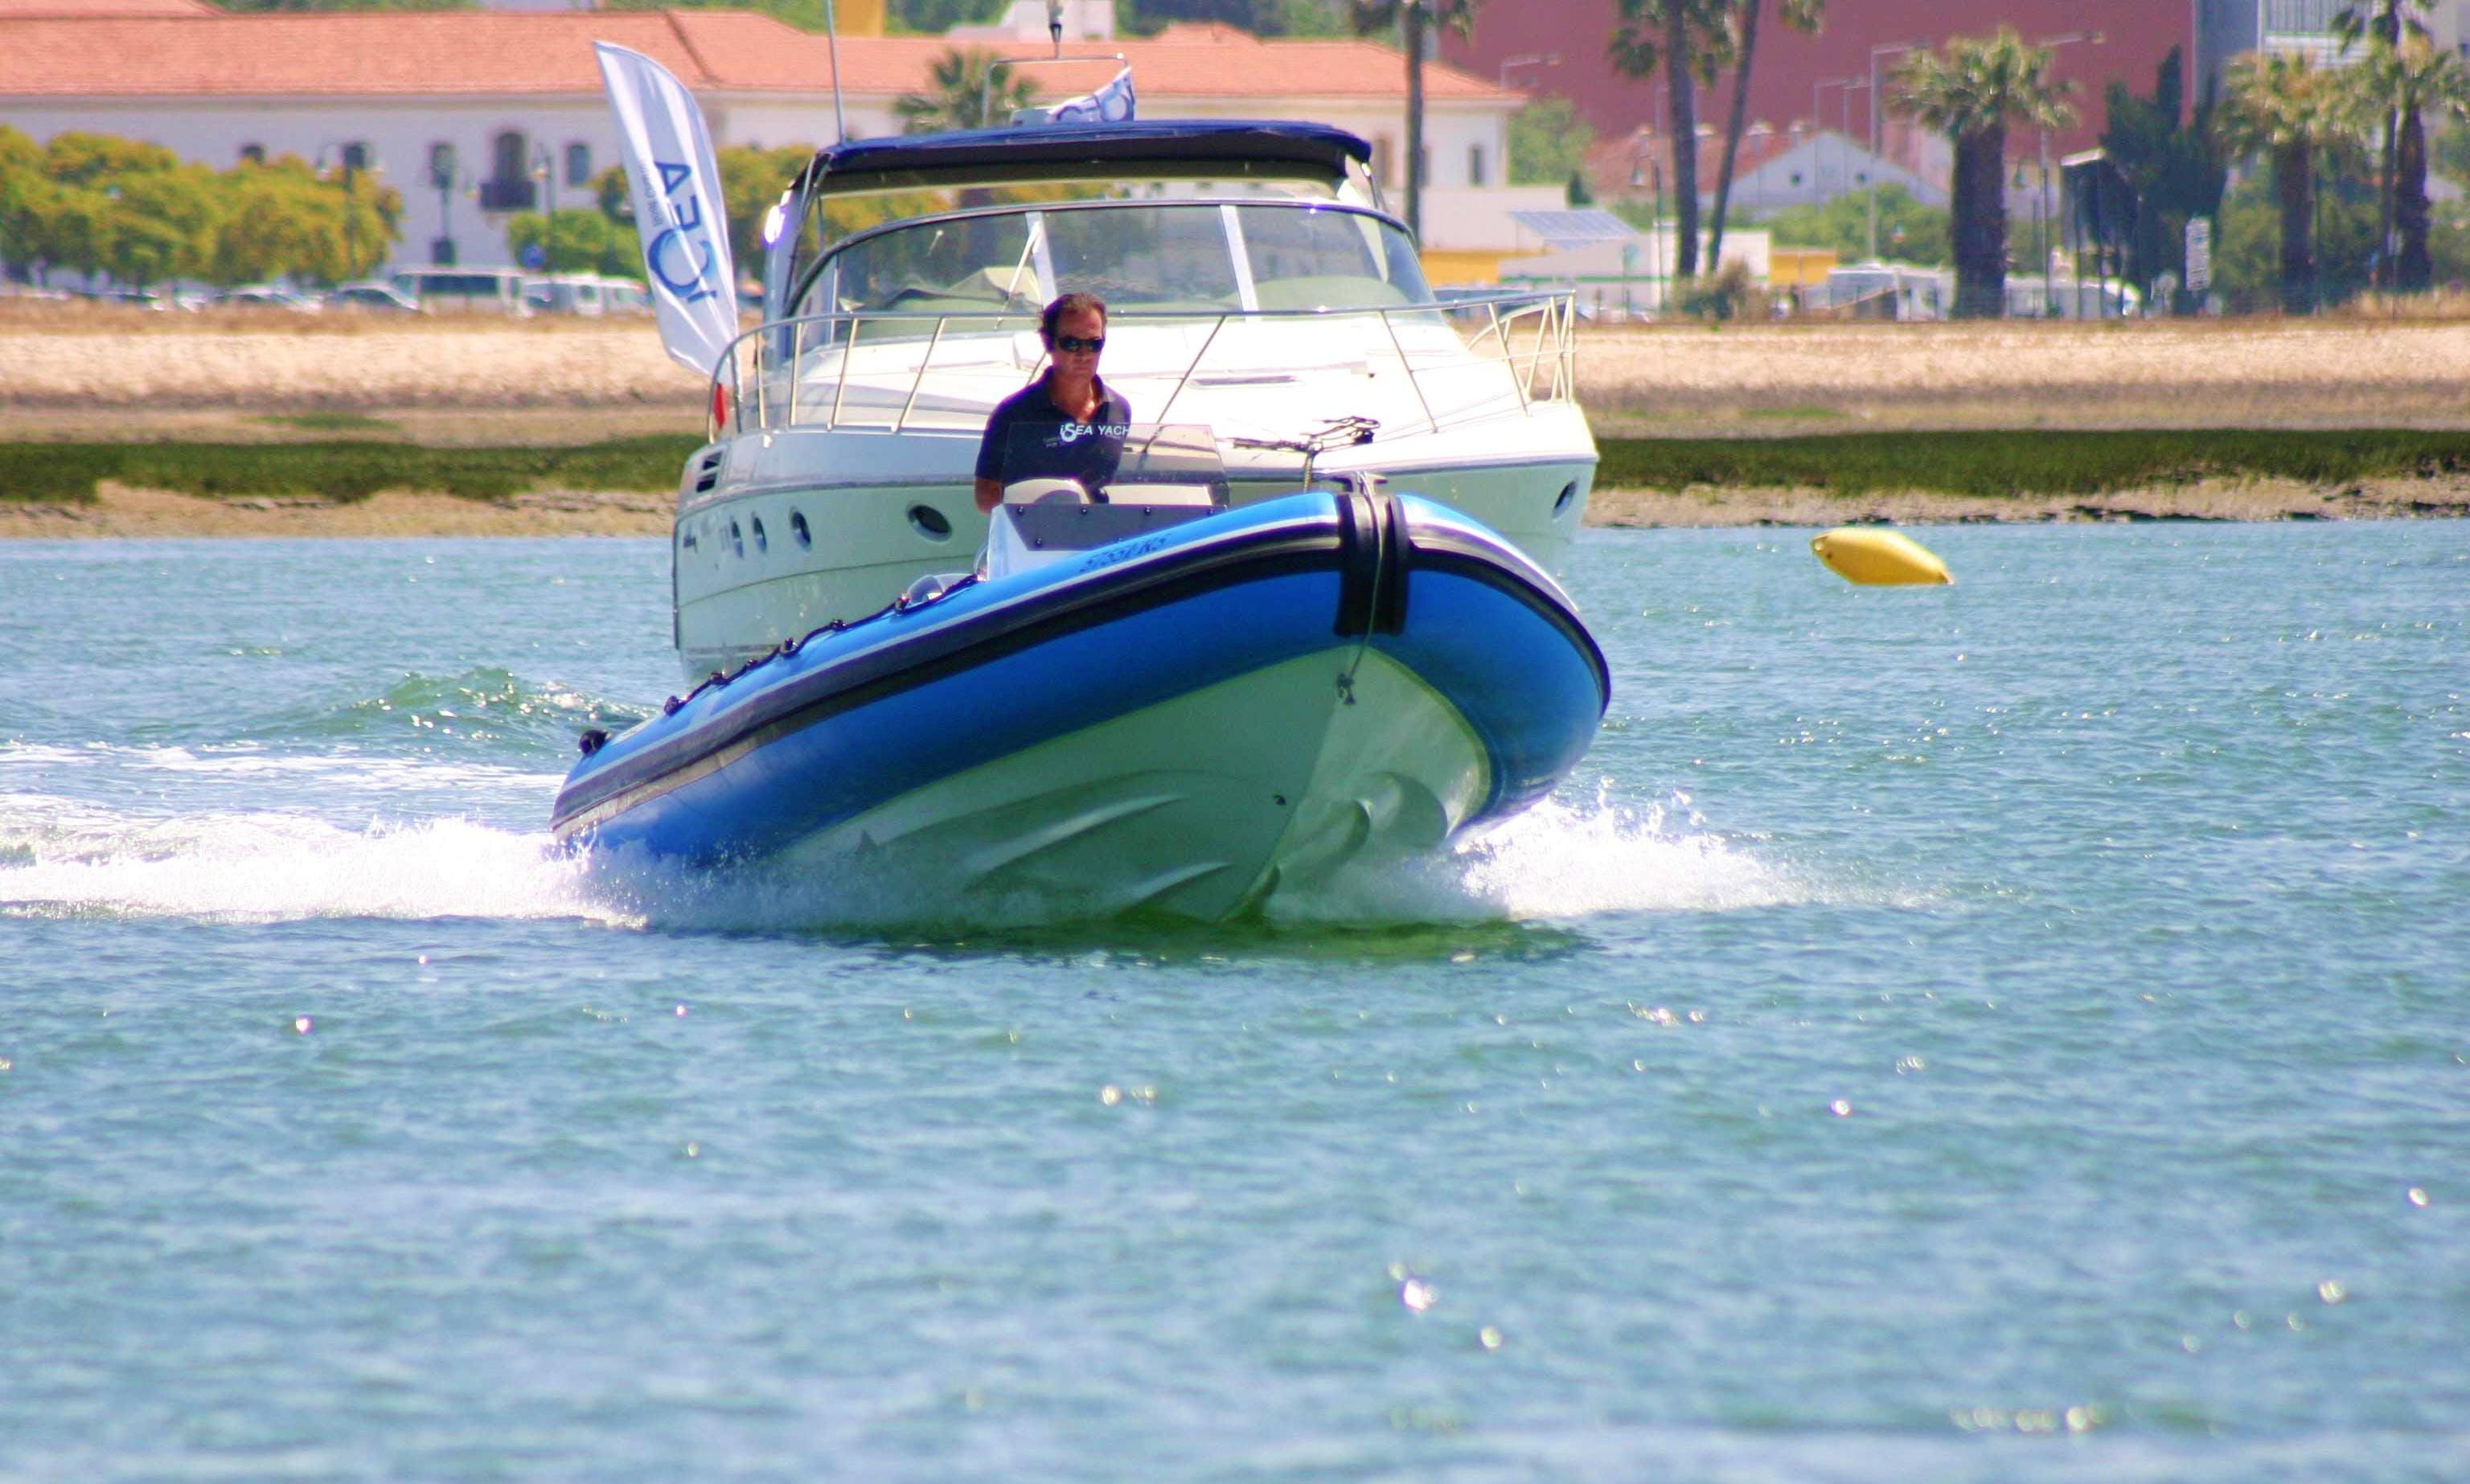 2018 Hidrosport 646 RIB rental in Faro for 8 guests